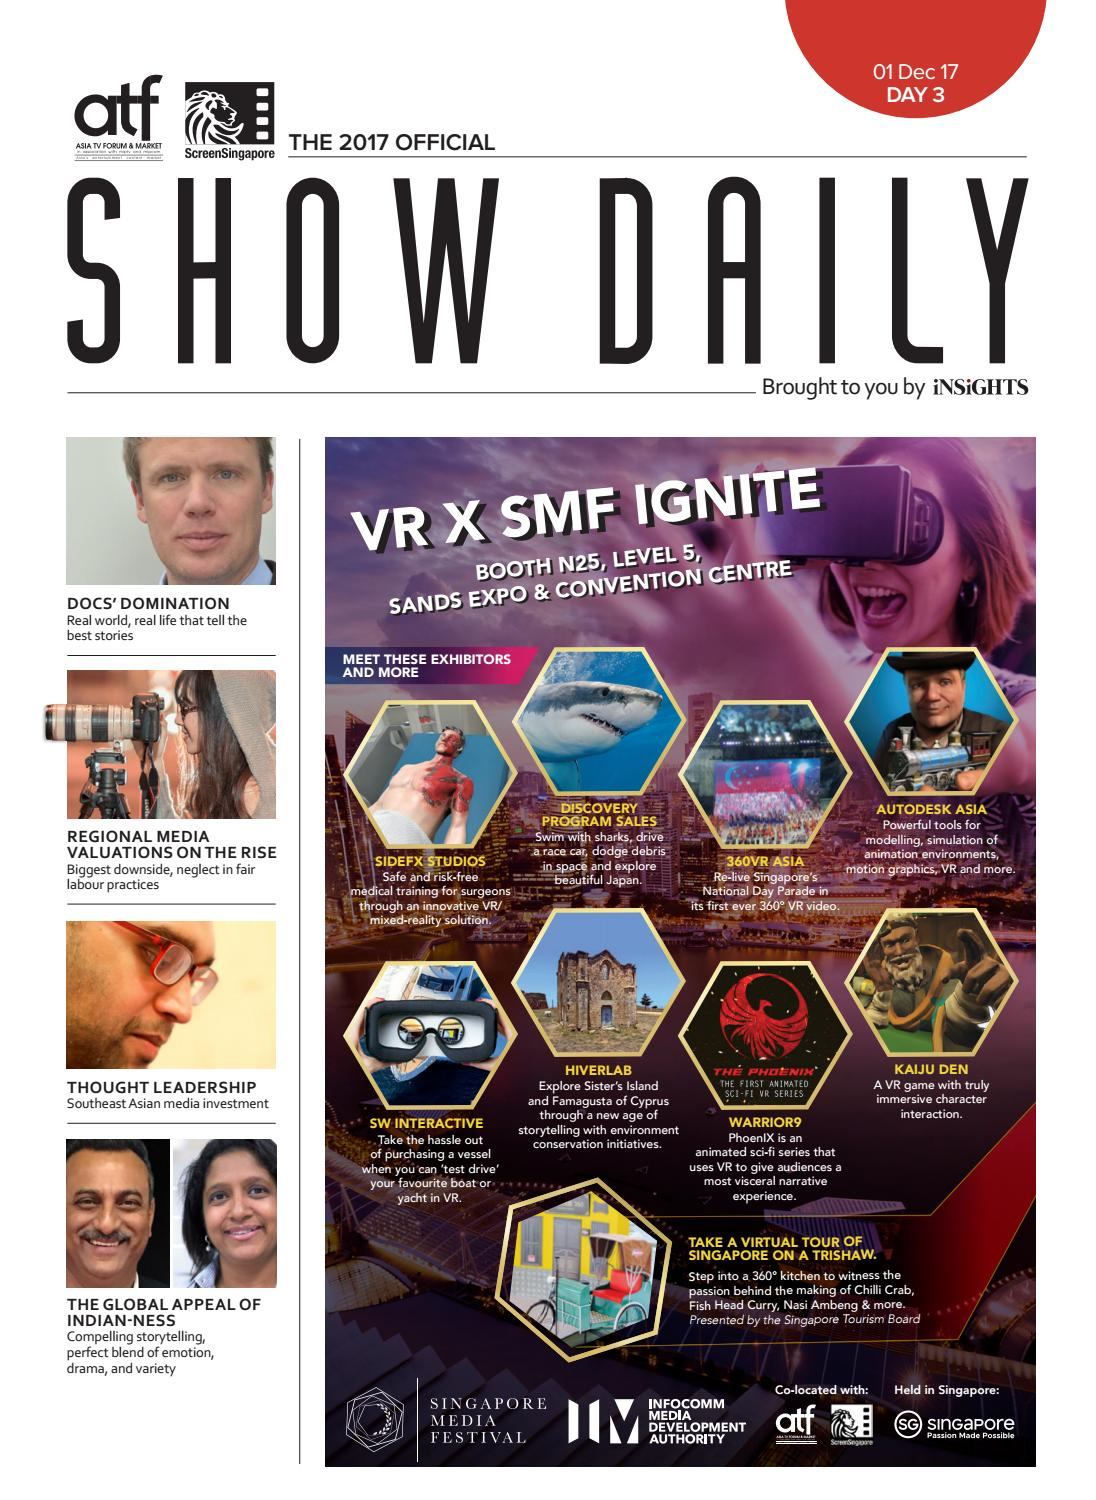 ATF_SS Show Daily Day 3 by Asia TV Forum & Market (ATF) - issuu